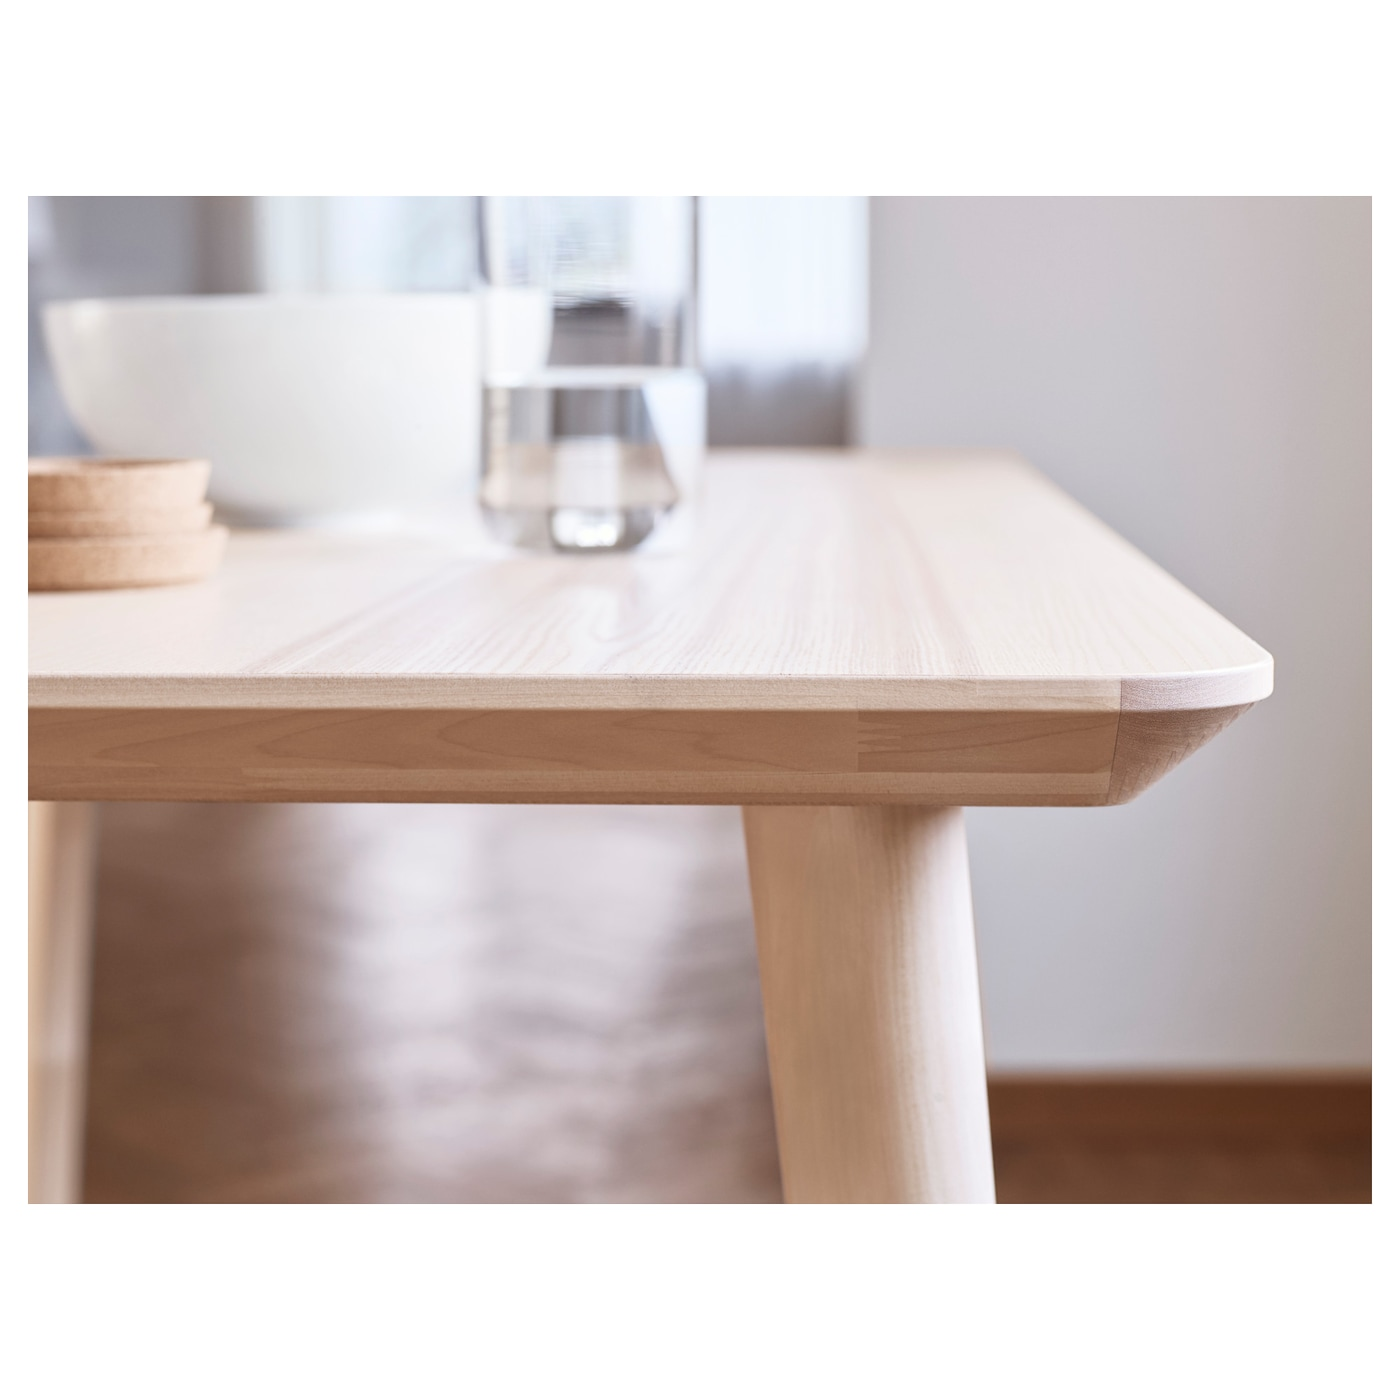 Lisabo coffee table ash veneer 70x70 cm ikea - Ikea table basse lack ...